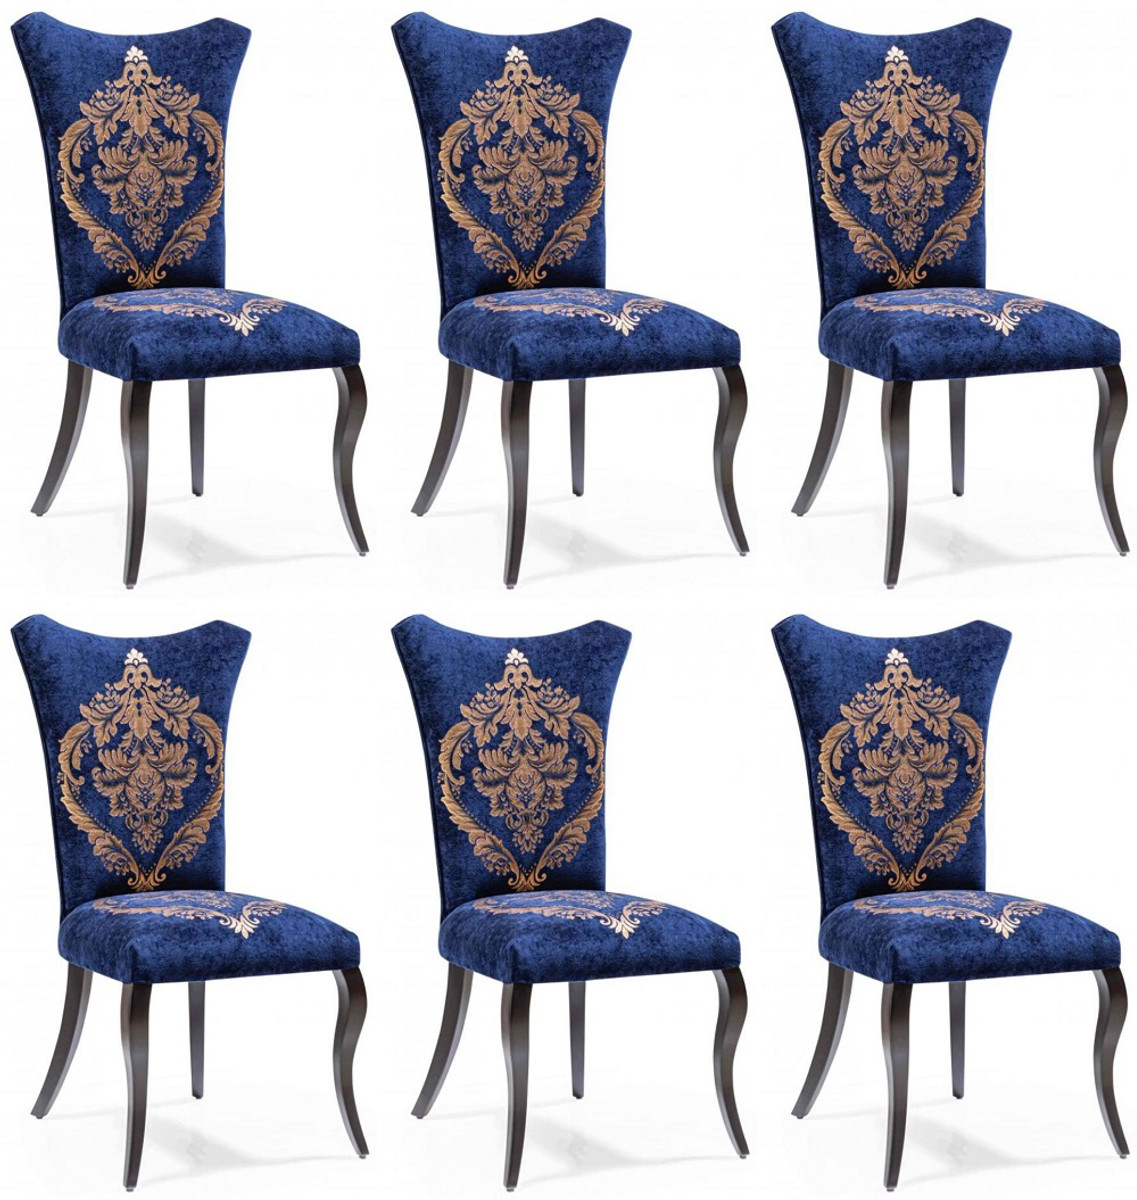 Casa Padrino Baroque Dining Room Chair, Dining Room Chairs Set Of 6